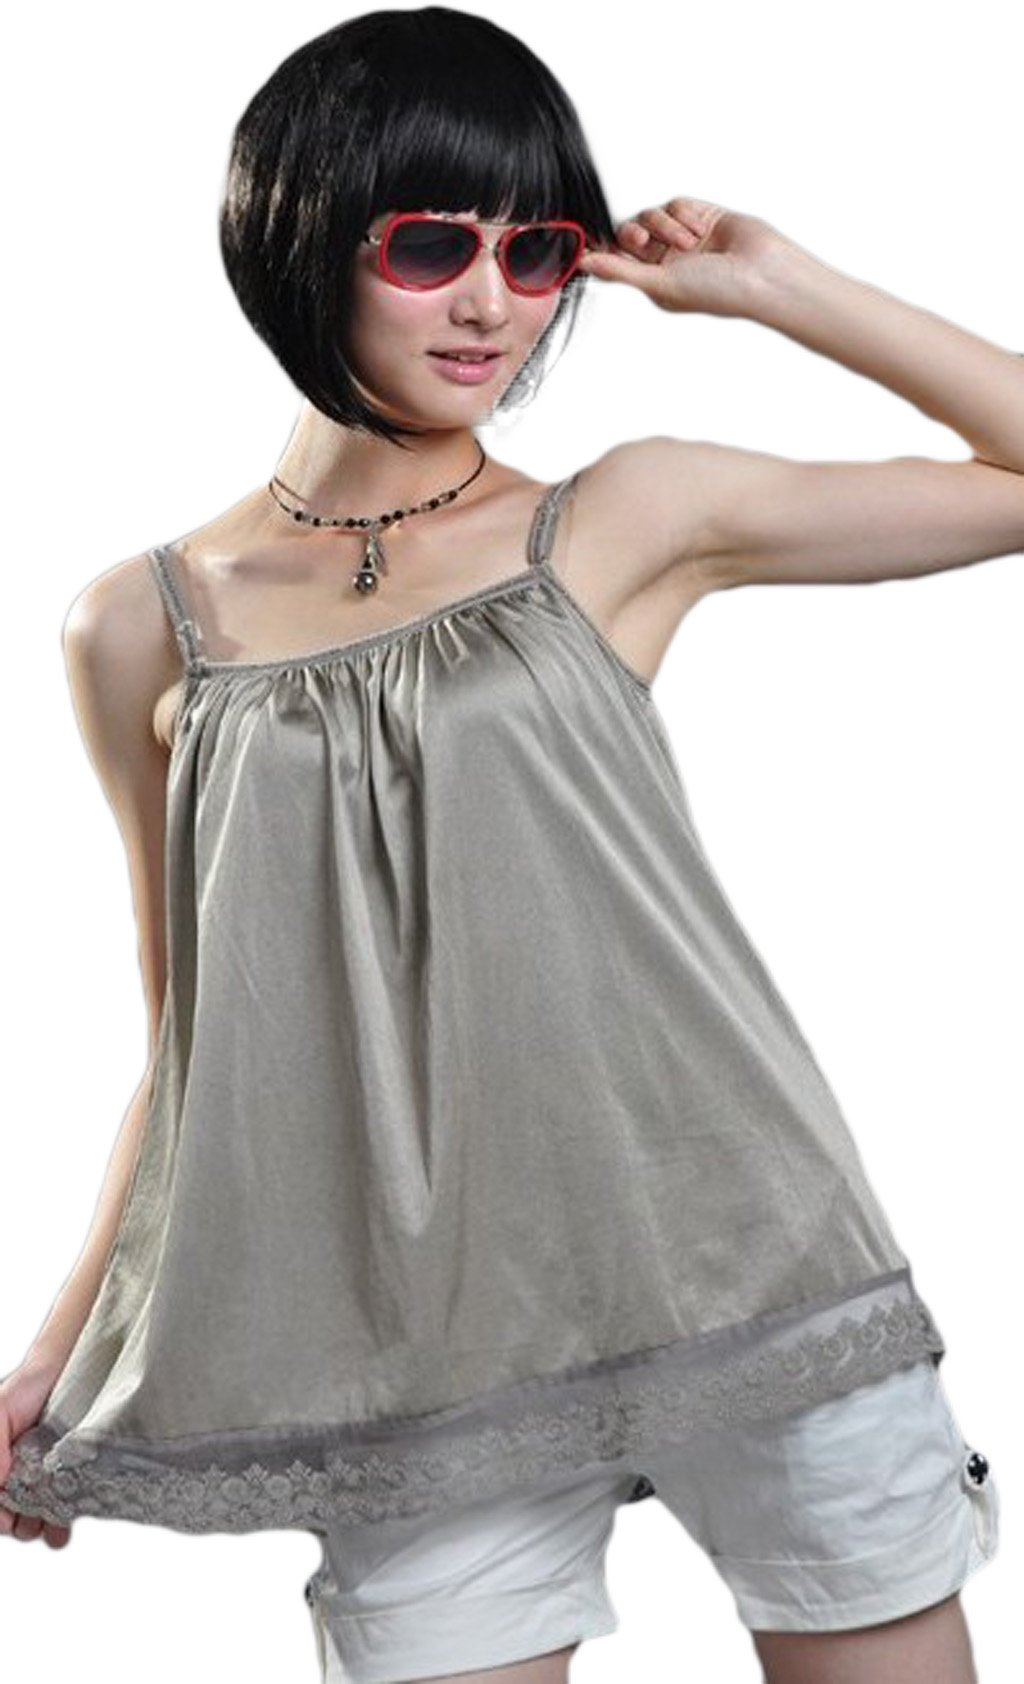 Anti-Radiation Maternity Tank Top Camisole Dresses Baby Protection Shield 800616